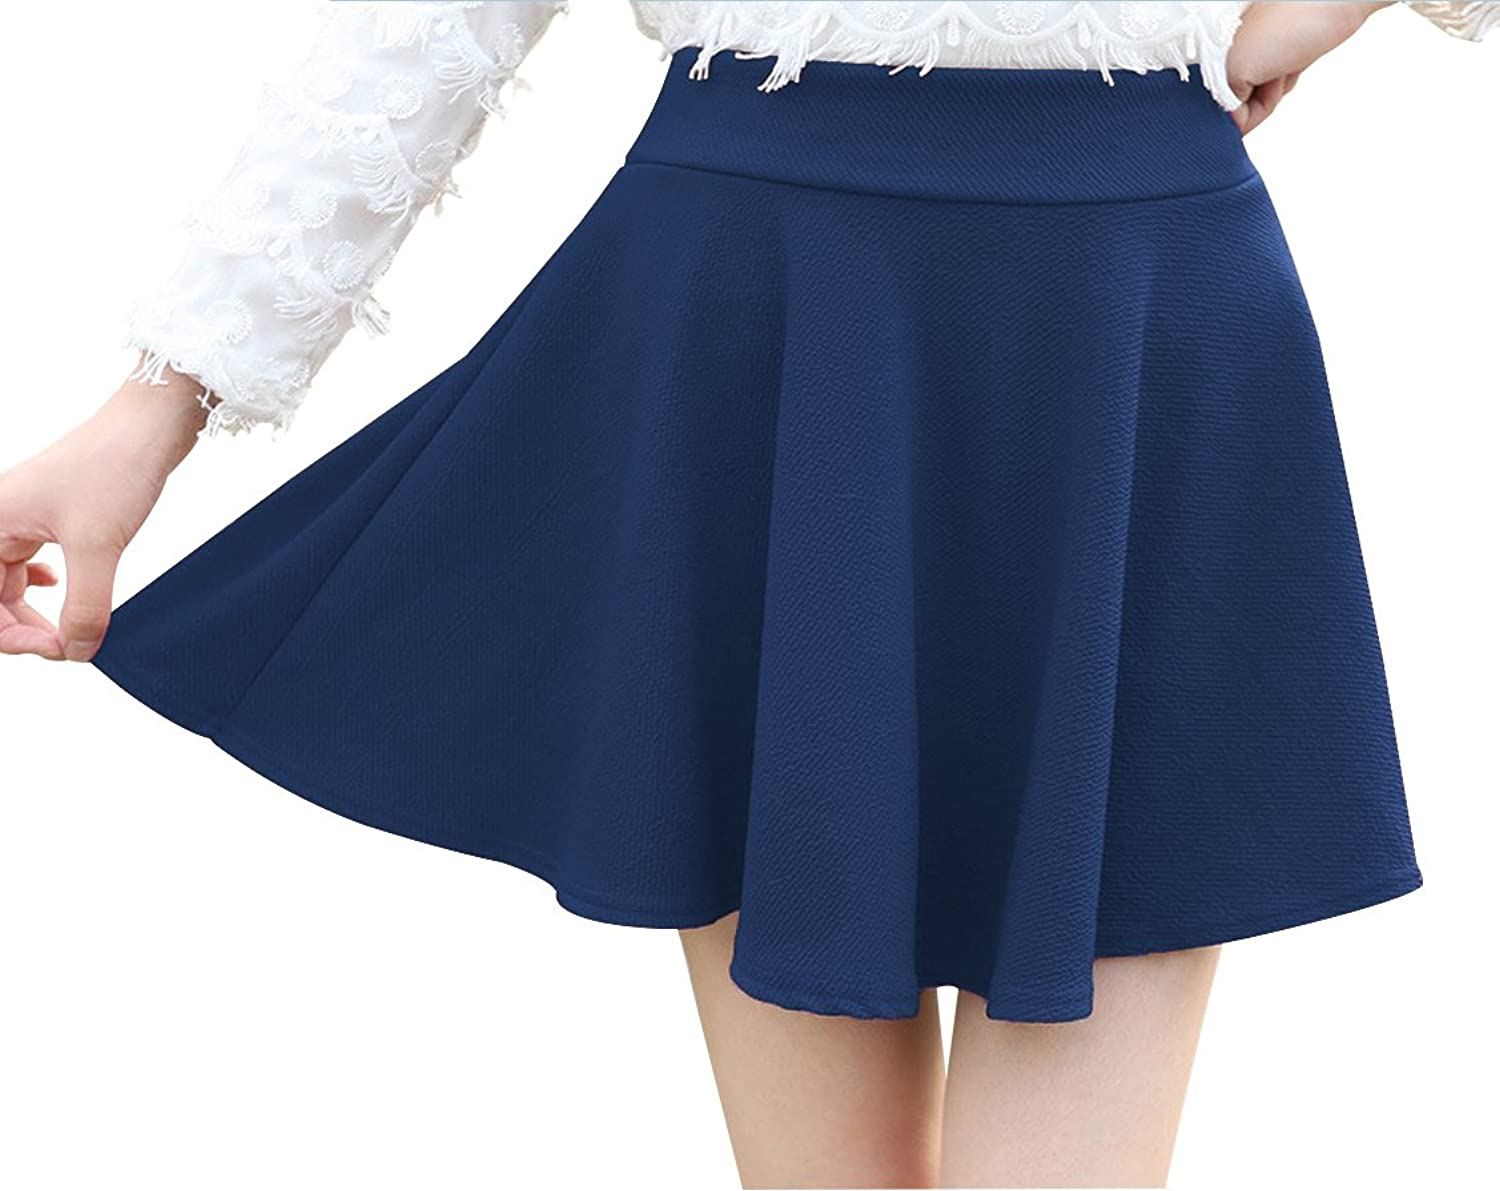 Affordable Women's Teen Girl's Basic Mini A Line Stretchy Skirt for Parties or Halloween